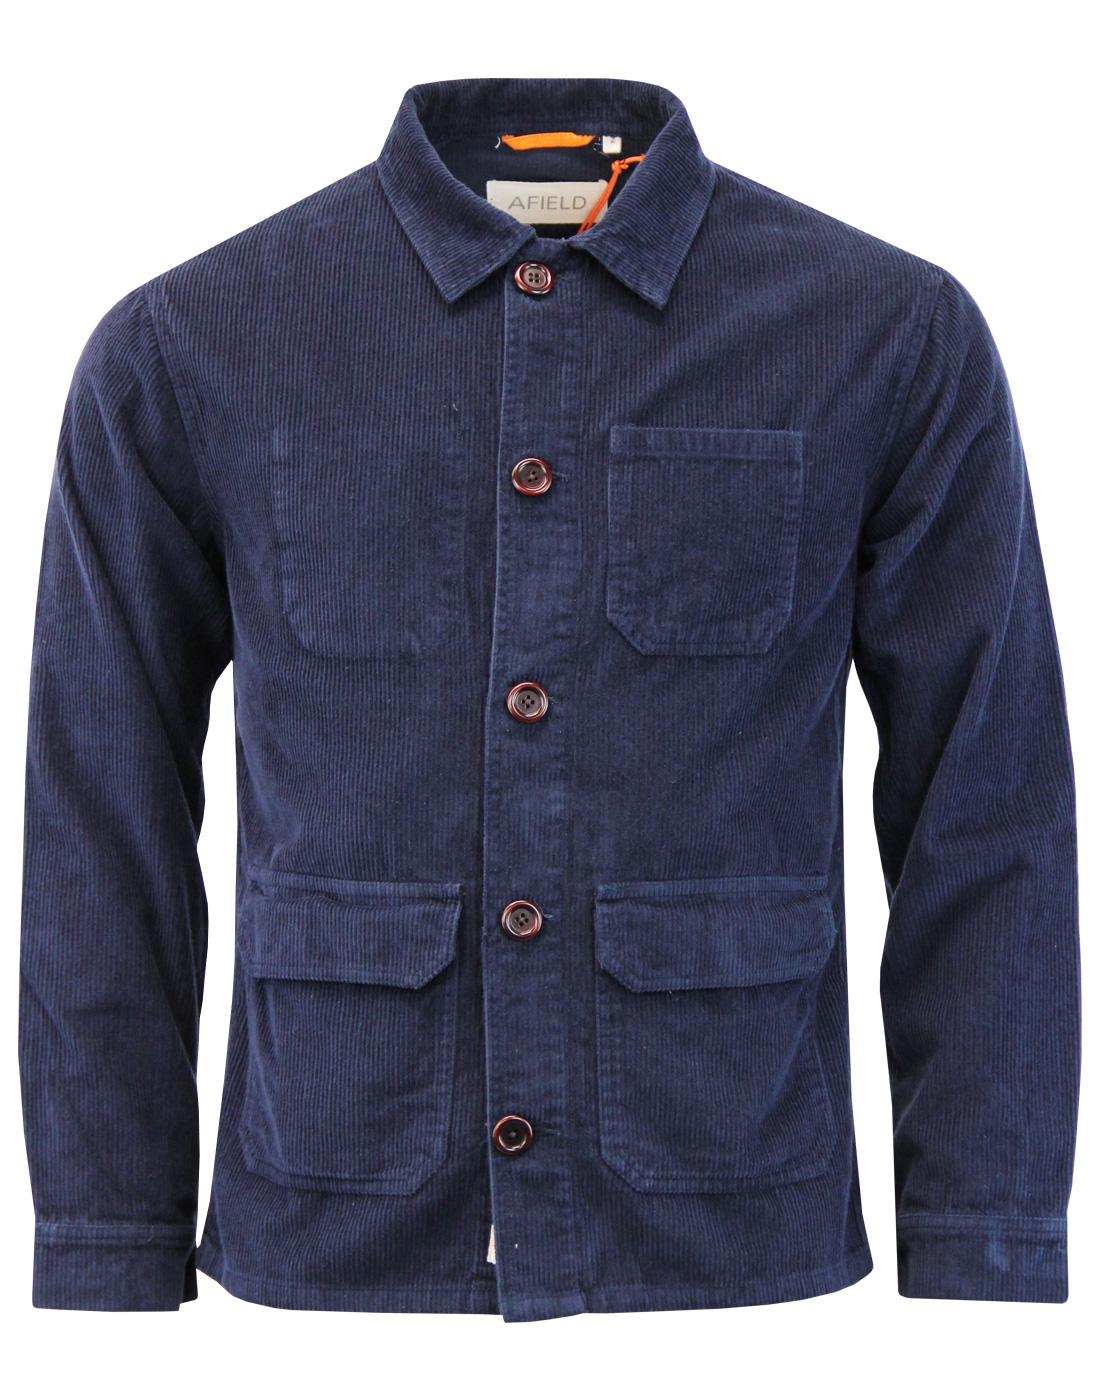 Porter AFIELD Retro Mod Corduroy Overshirt Jacket